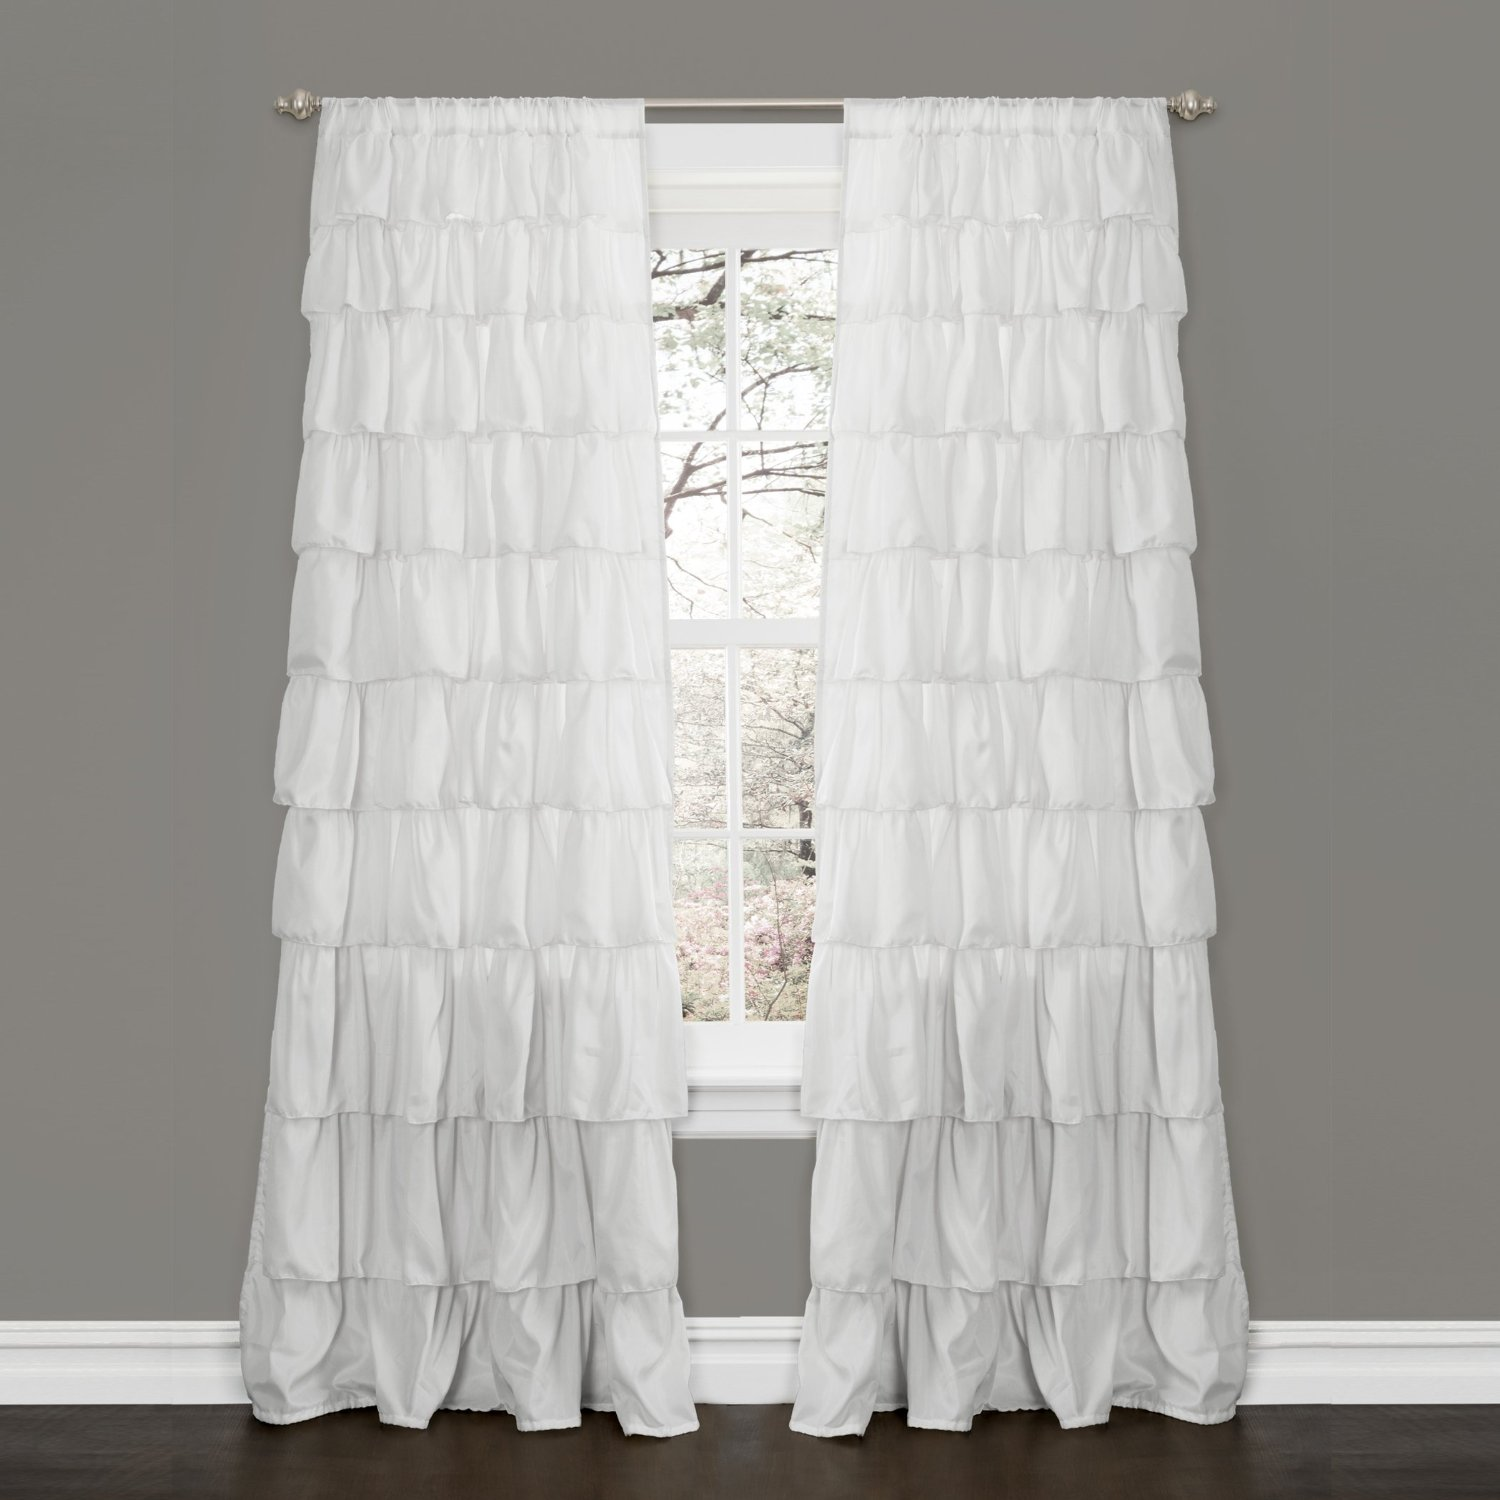 drapes cynthia rowley white of window unique ruffled best curtains curtain ideas